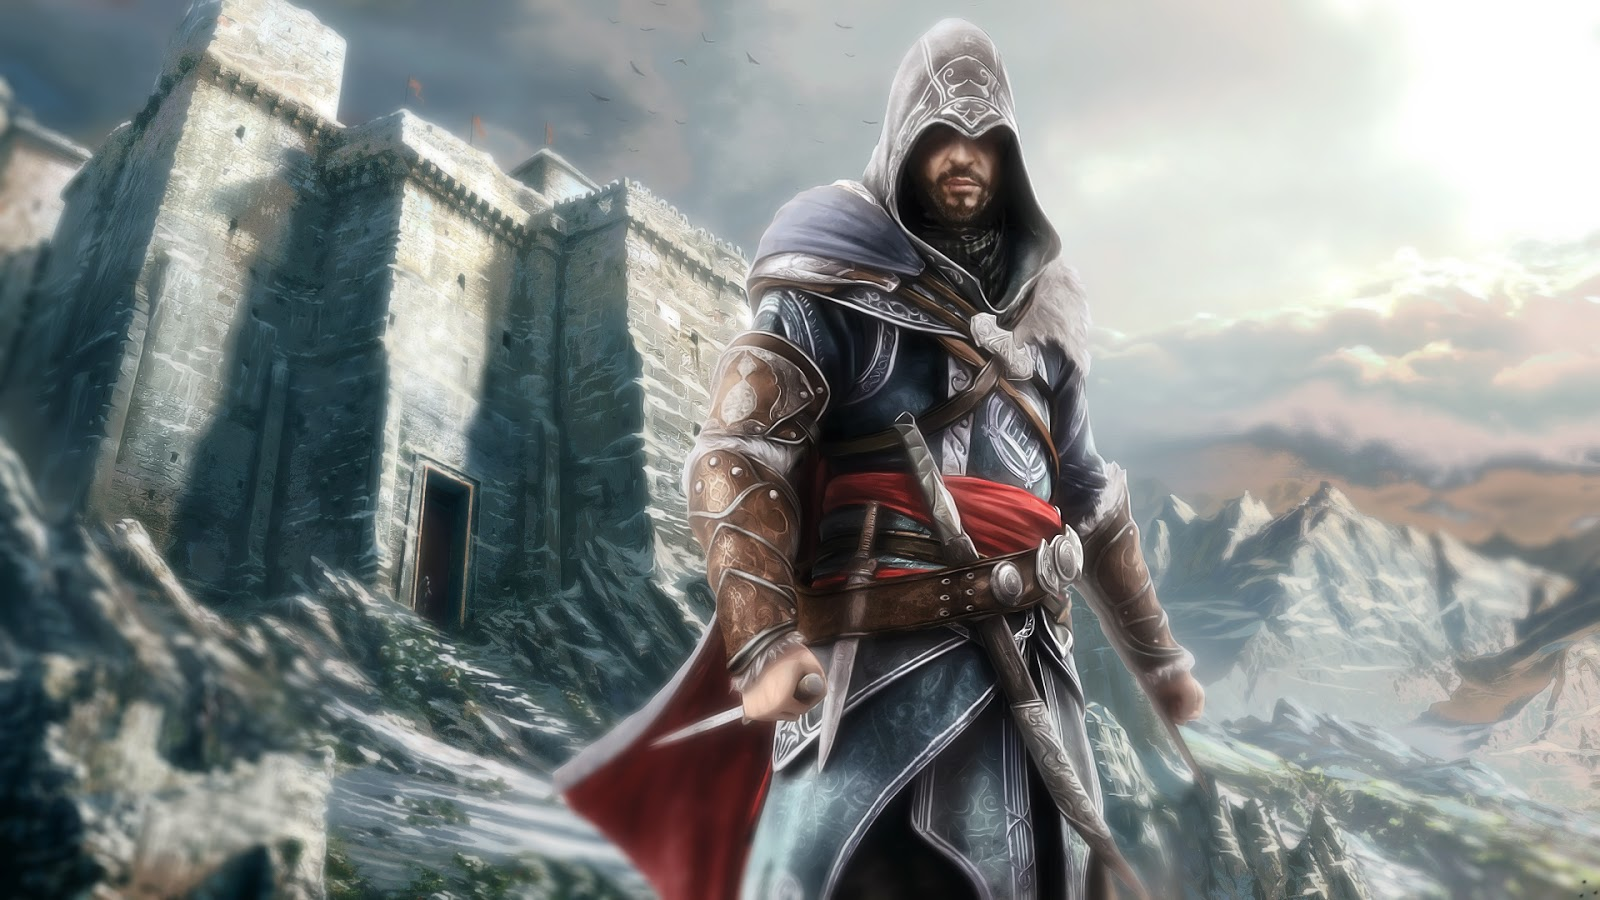 dreamWALLpics: Assassins creed hd wallpapers